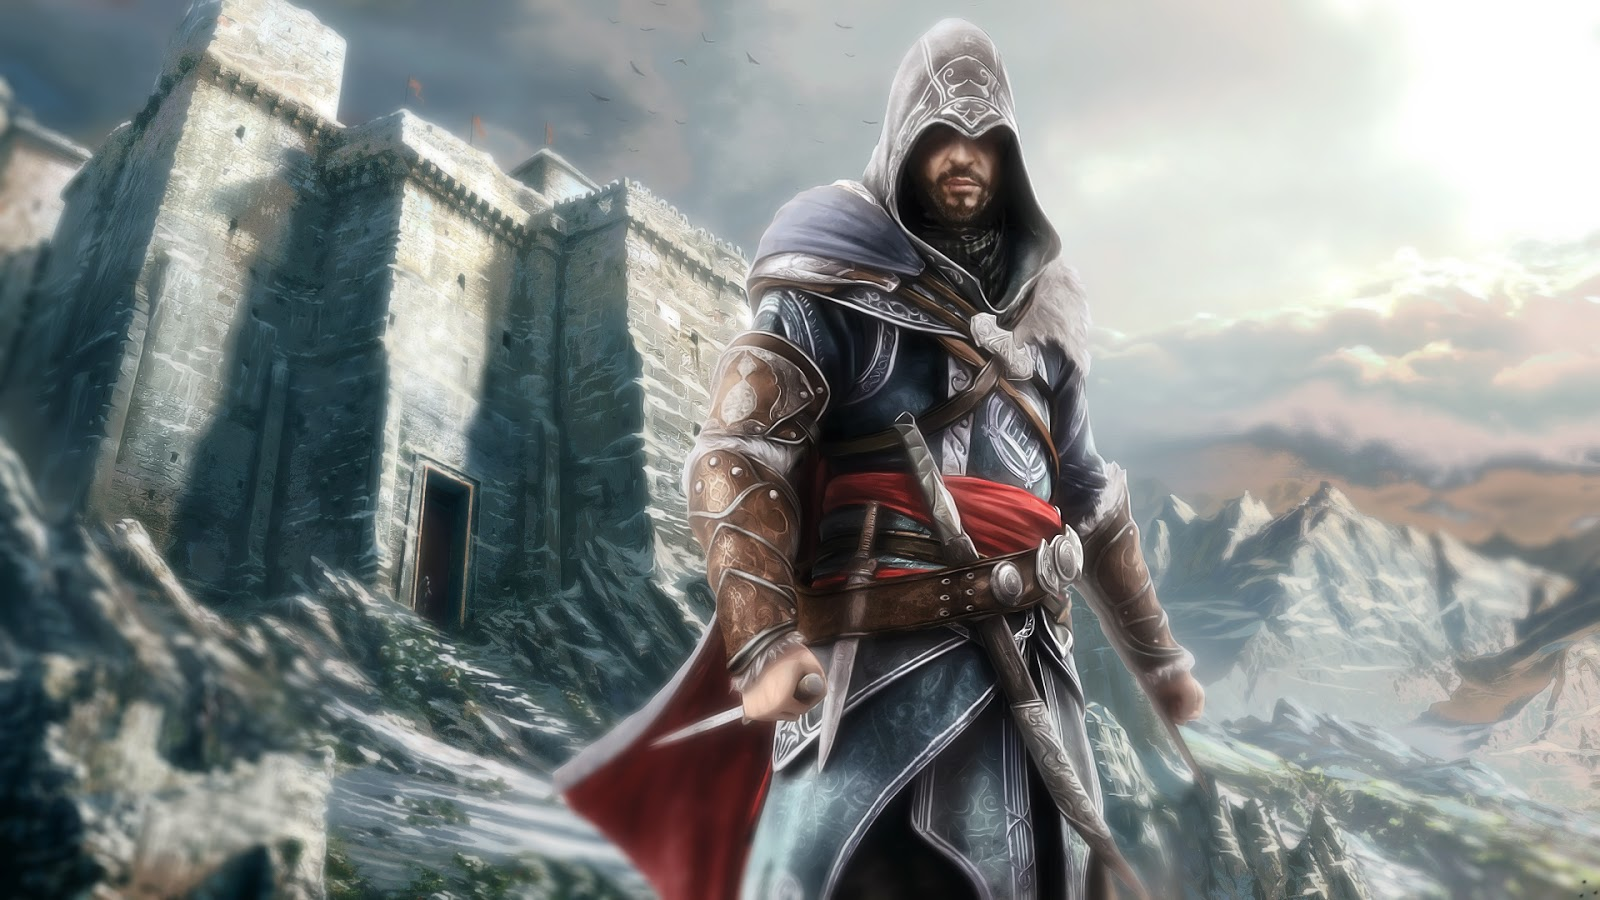 dreamWALLpics: Assassins creed hd wallpapers